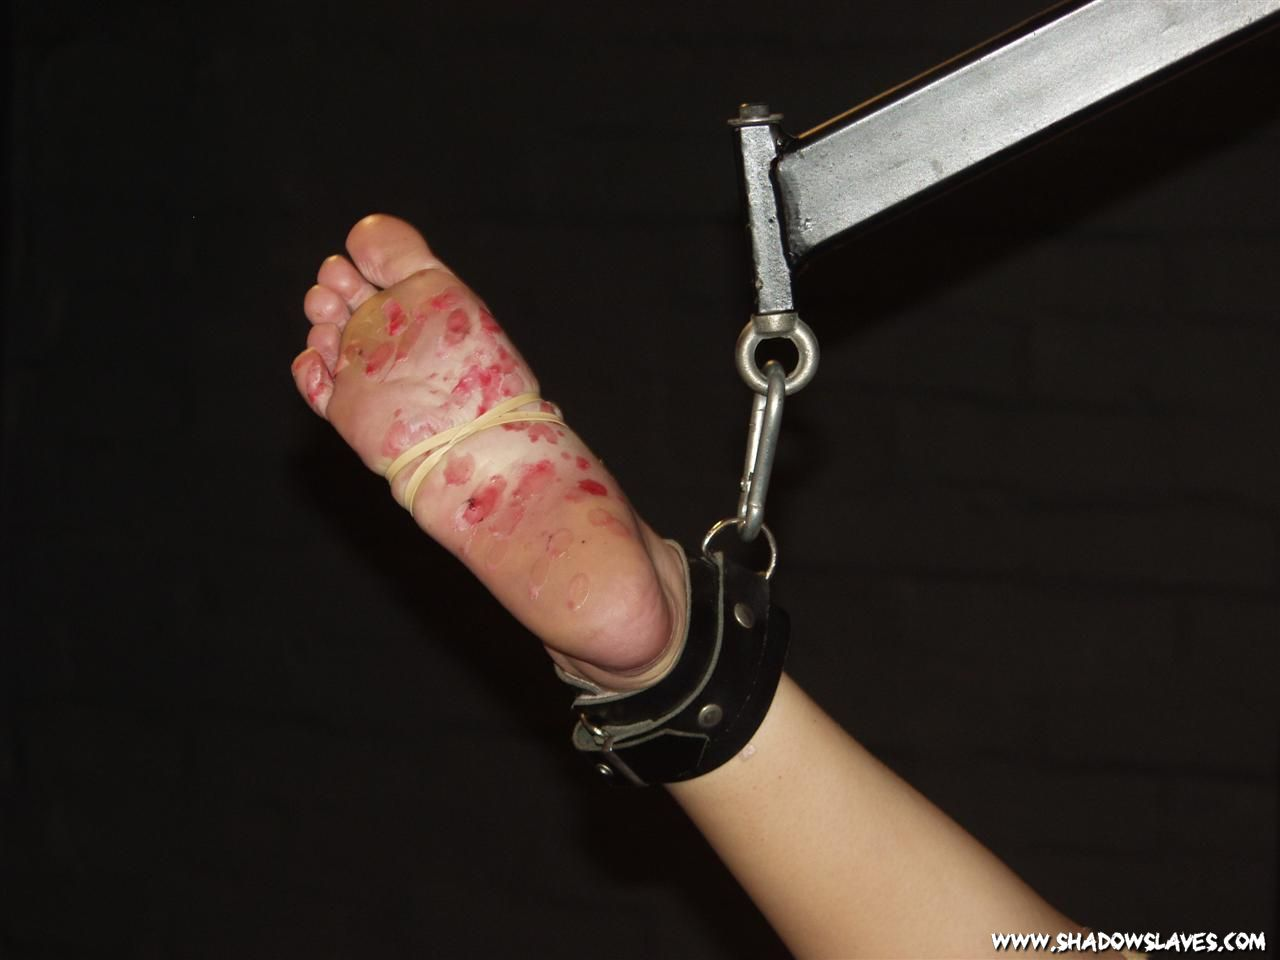 Bdsm foot worship